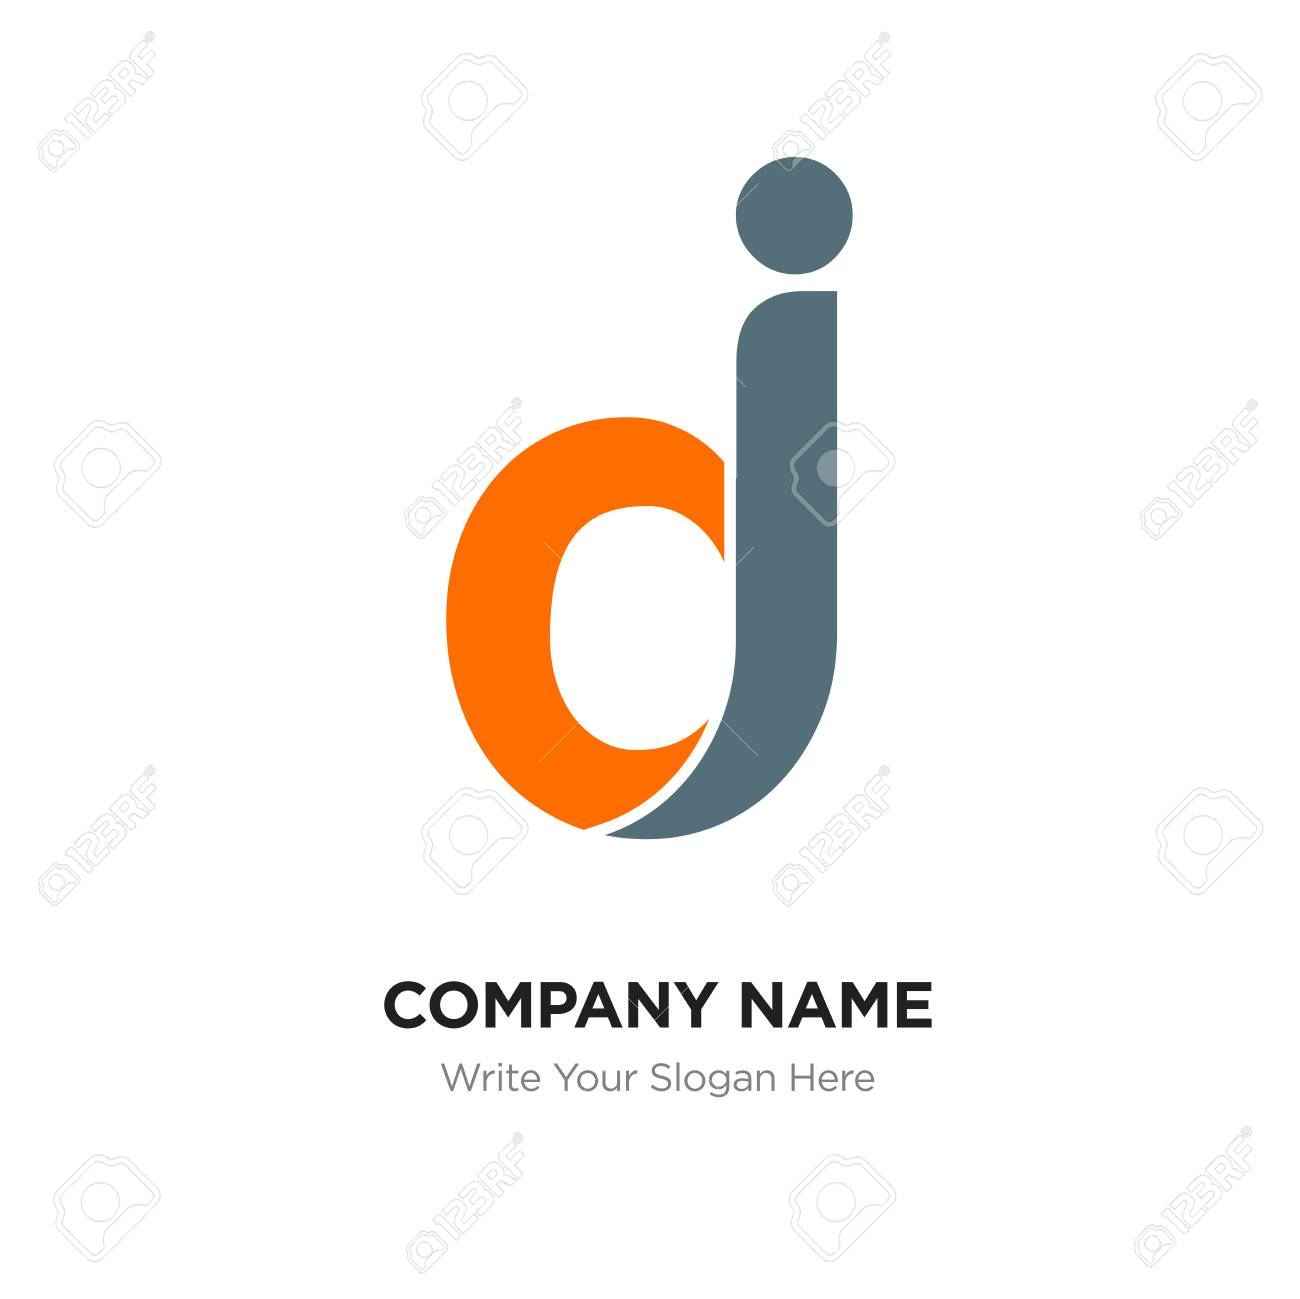 abstract letter dj jd logo design template black orange alphabet royalty free cliparts vectors and stock illustration image 96432613 abstract letter dj jd logo design template black orange alphabet